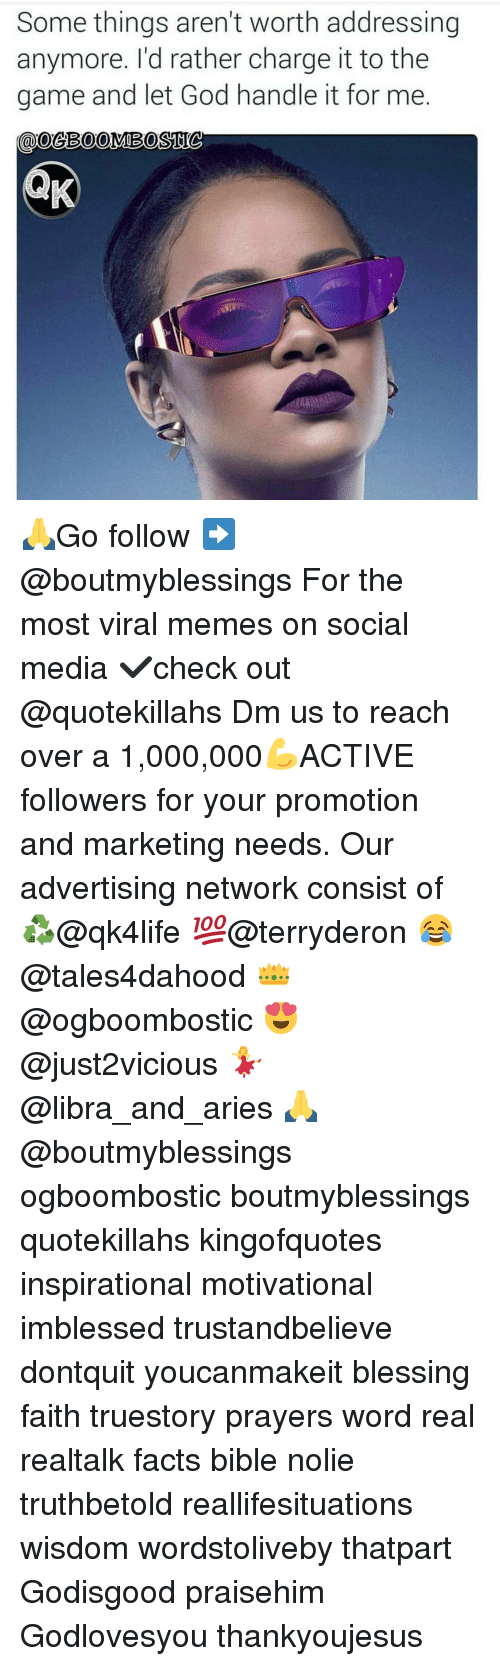 Facts, God, and Memes: Some things aren't worth addressing  anymore. I'd rather charge it to the  game and let God handle it for me.  CaDoeBOOMBOSTIC 🙏Go follow ➡@boutmyblessings For the most viral memes on social media ✔check out @quotekillahs Dm us to reach over a 1,000,000💪ACTIVE followers for your promotion and marketing needs. Our advertising network consist of ♻@qk4life 💯@terryderon 😂@tales4dahood 👑@ogboombostic 😍@just2vicious 💃@libra_and_aries 🙏@boutmyblessings ogboombostic boutmyblessings quotekillahs kingofquotes inspirational motivational imblessed trustandbelieve dontquit youcanmakeit blessing faith truestory prayers word real realtalk facts bible nolie truthbetold reallifesituations wisdom wordstoliveby thatpart Godisgood praisehim Godlovesyou thankyoujesus